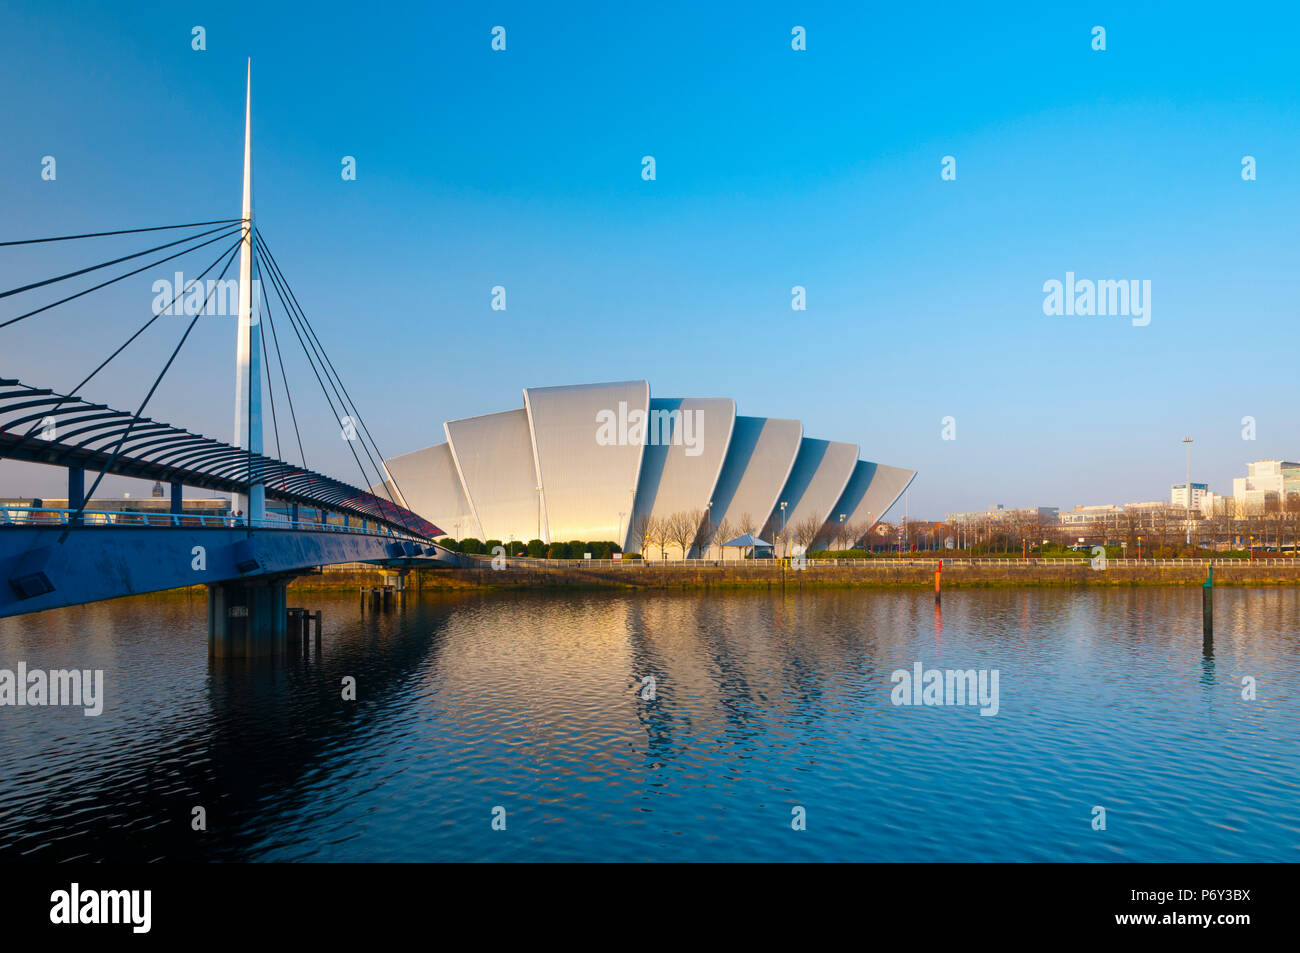 UK, Scotland, Glasgow, Scottish Exhibition and Conference Centre SECC, or Armadillo, beside River Clyde - Stock Image